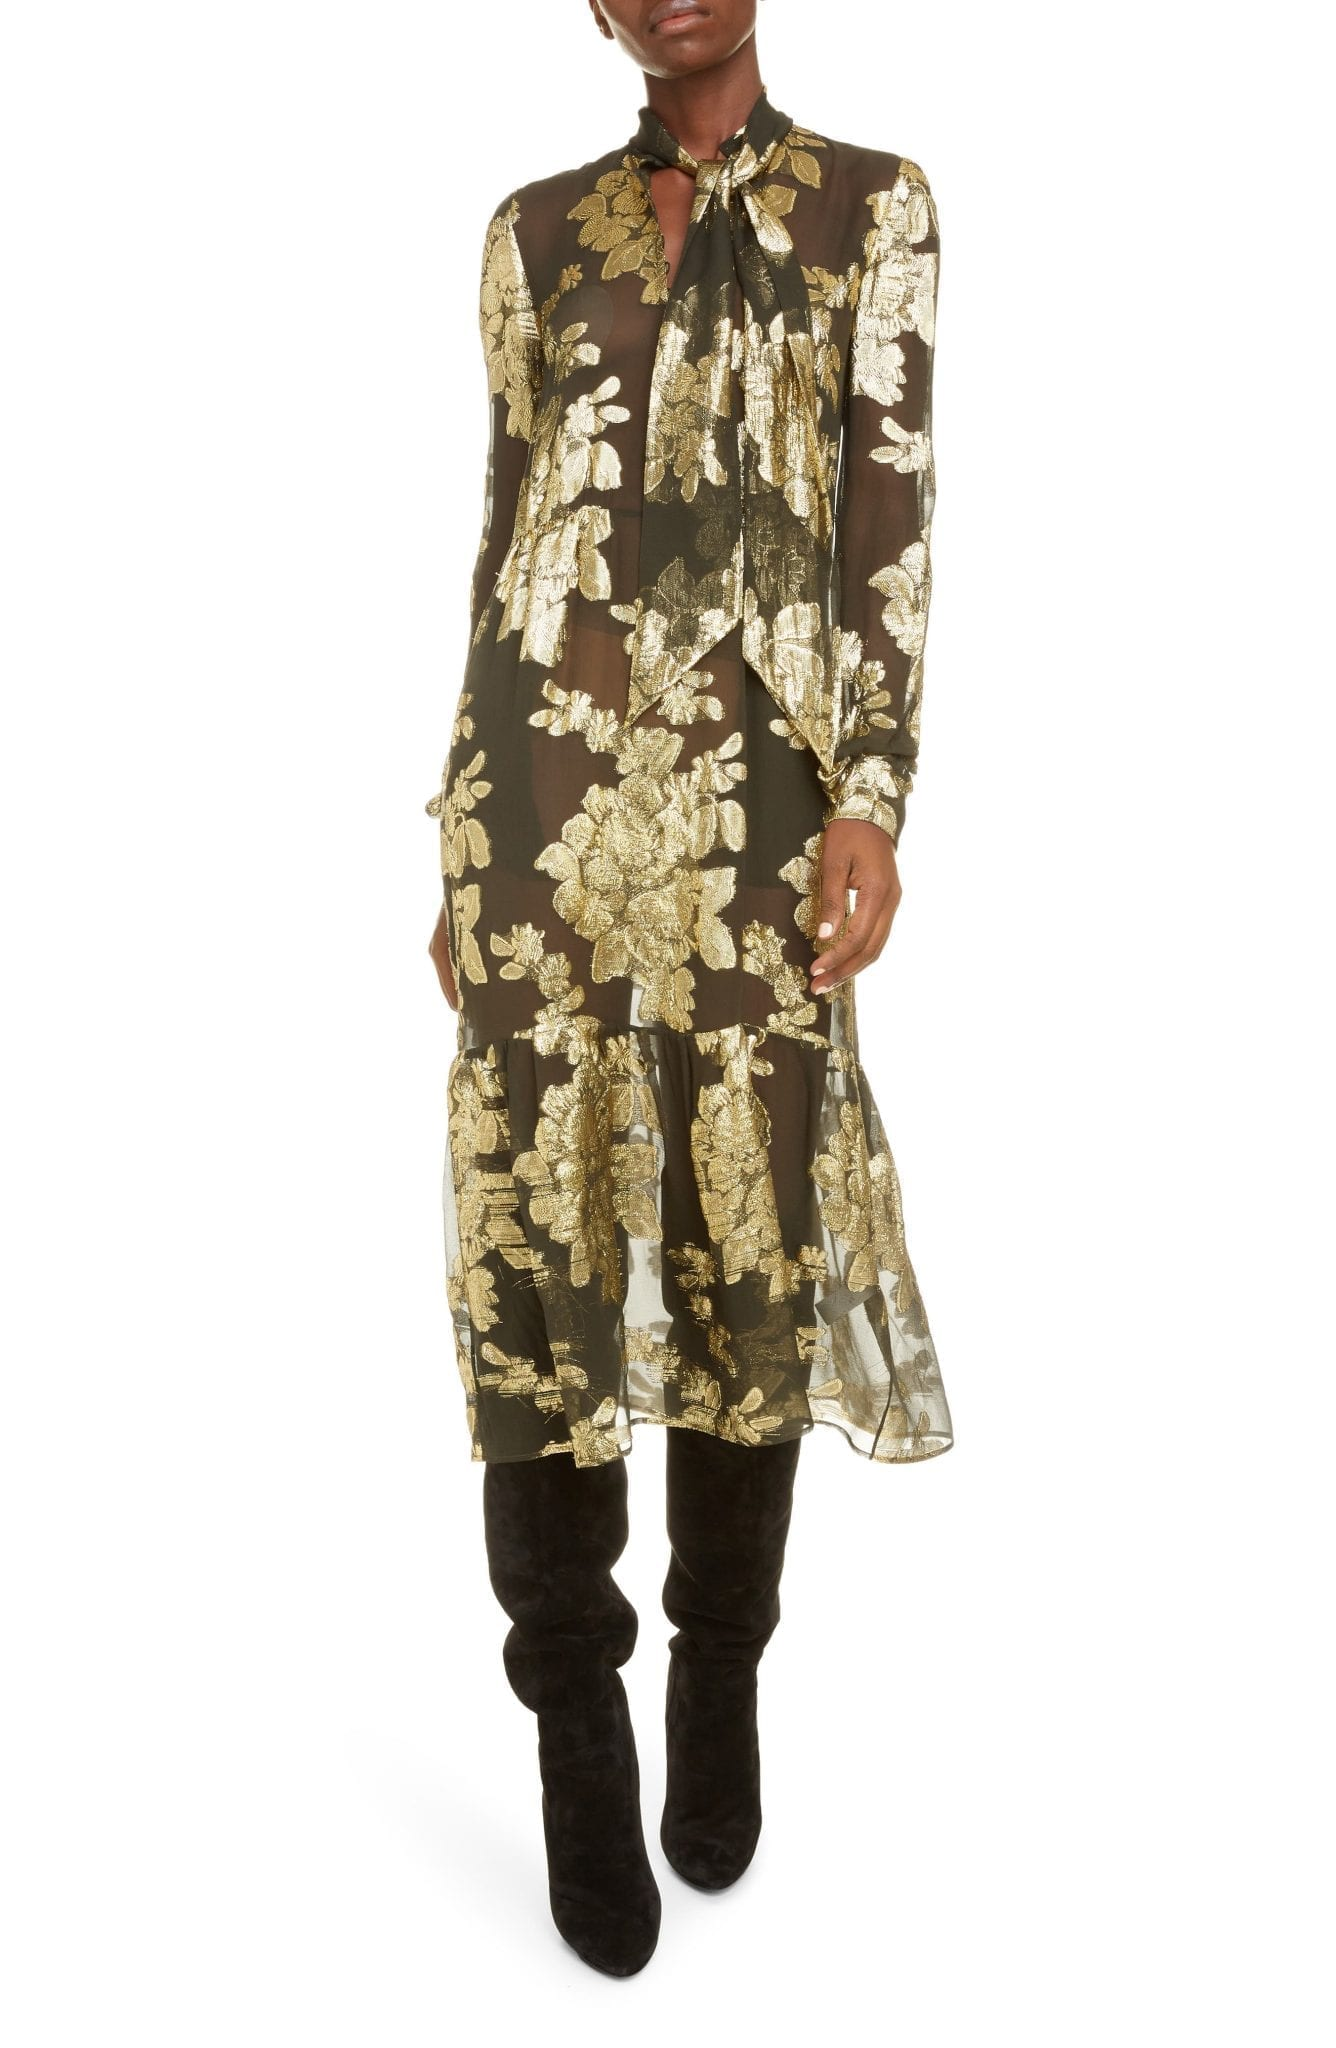 SAINT LAURENT Floral Fil Coupé Sheer Long Sleeve Midi Dress